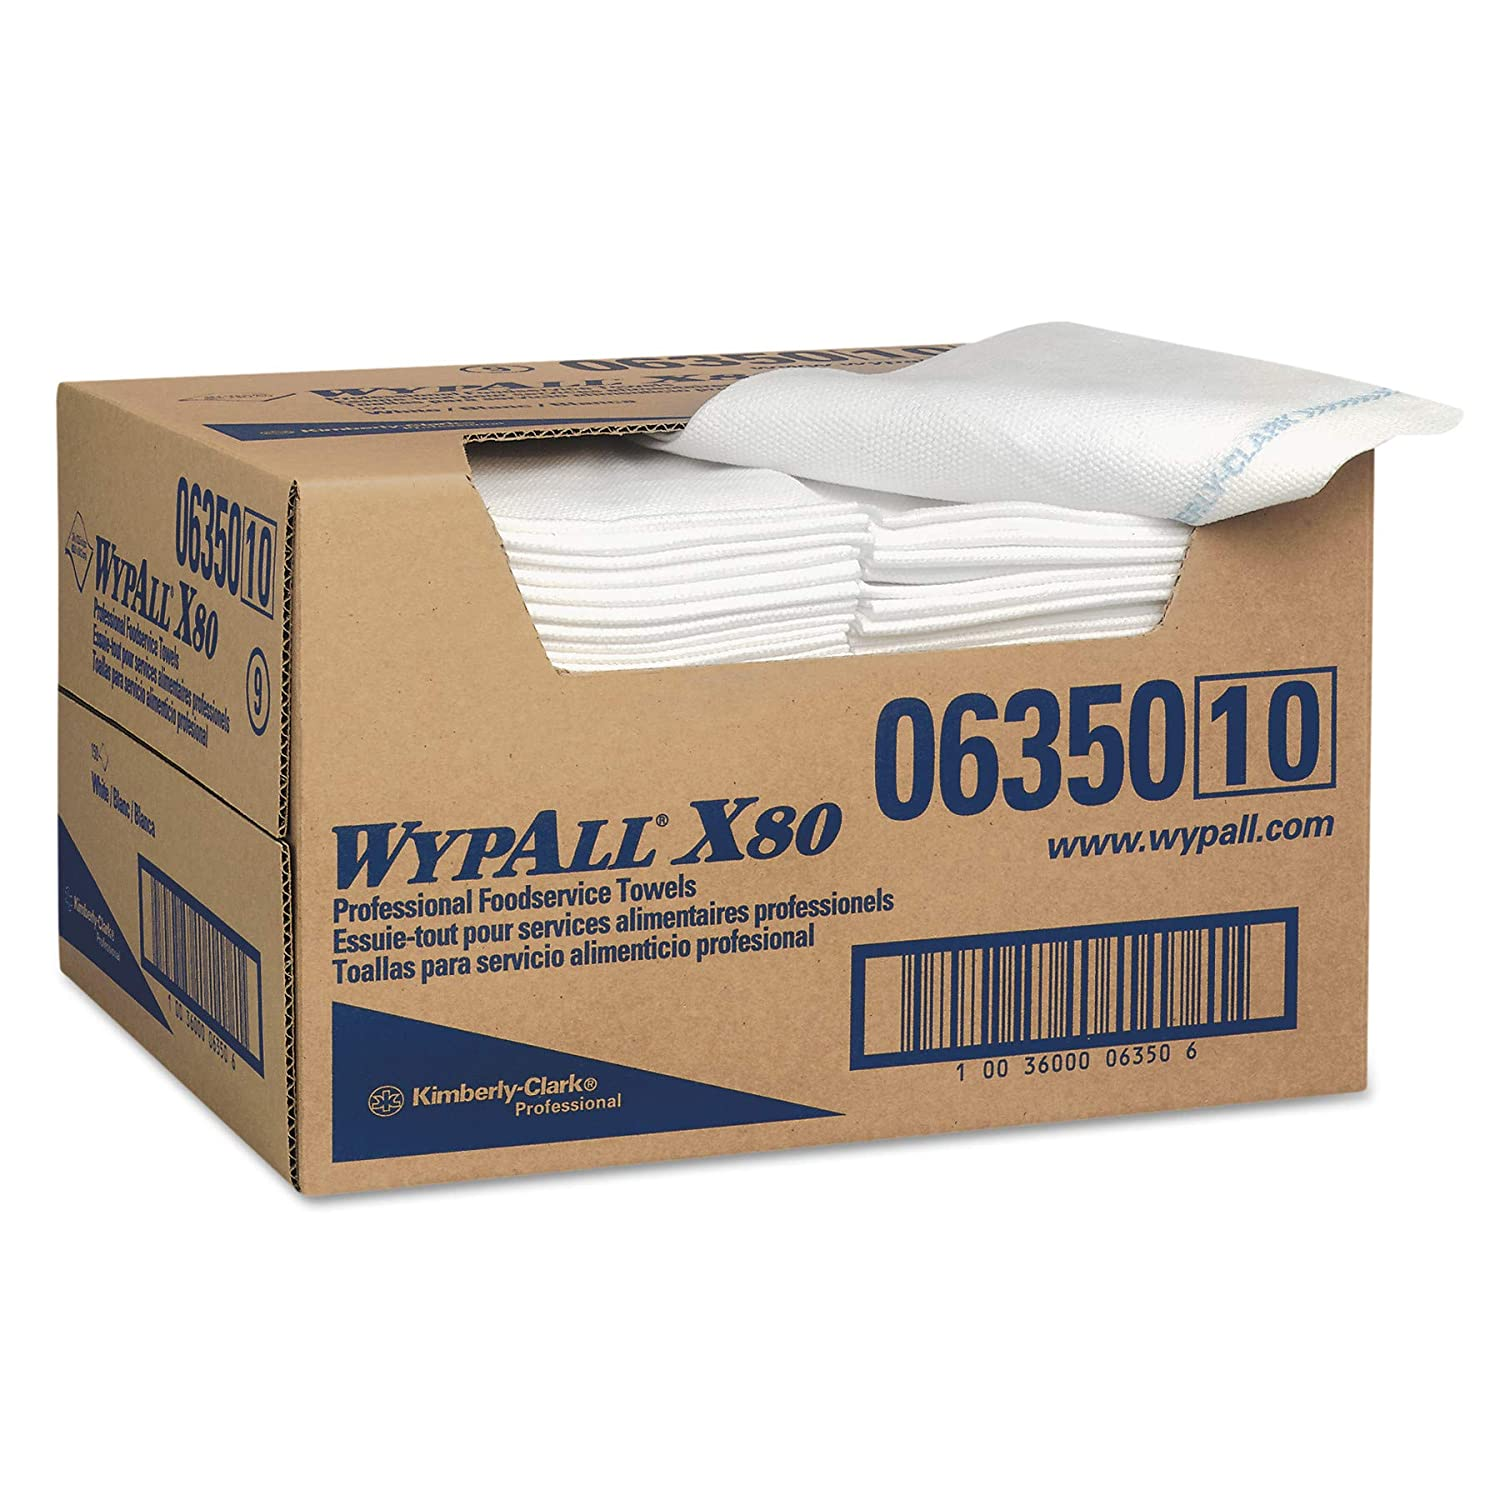 WypAll 06350 X80 Foodservice Paper Towel, Spunlace, 13 1/2 x 24, White (Case of 150)